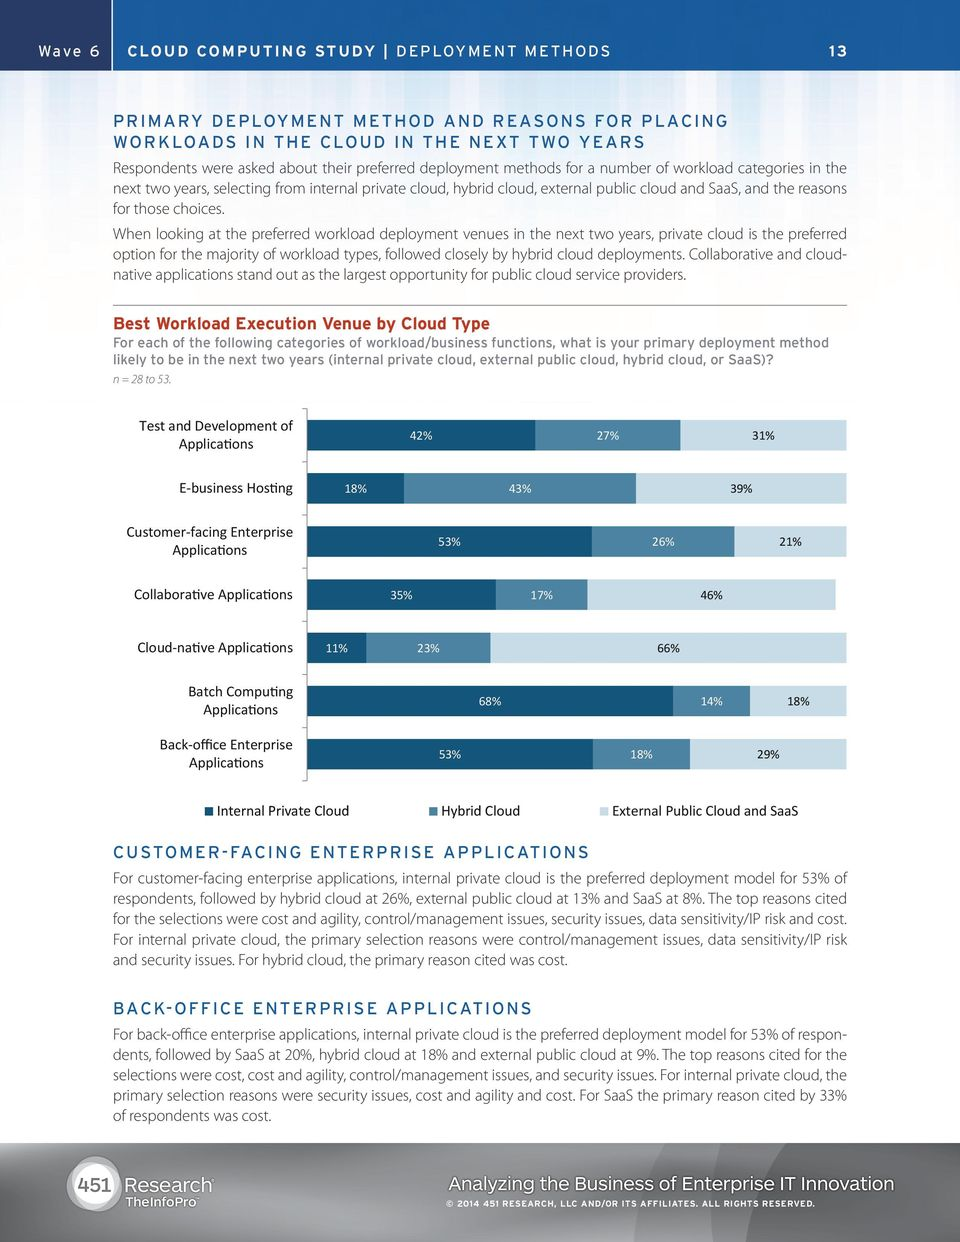 When looking at the preferred workload deployment venues in the next two years, private cloud is the preferred option for the majority of workload types, followed closely by hybrid cloud deployments.